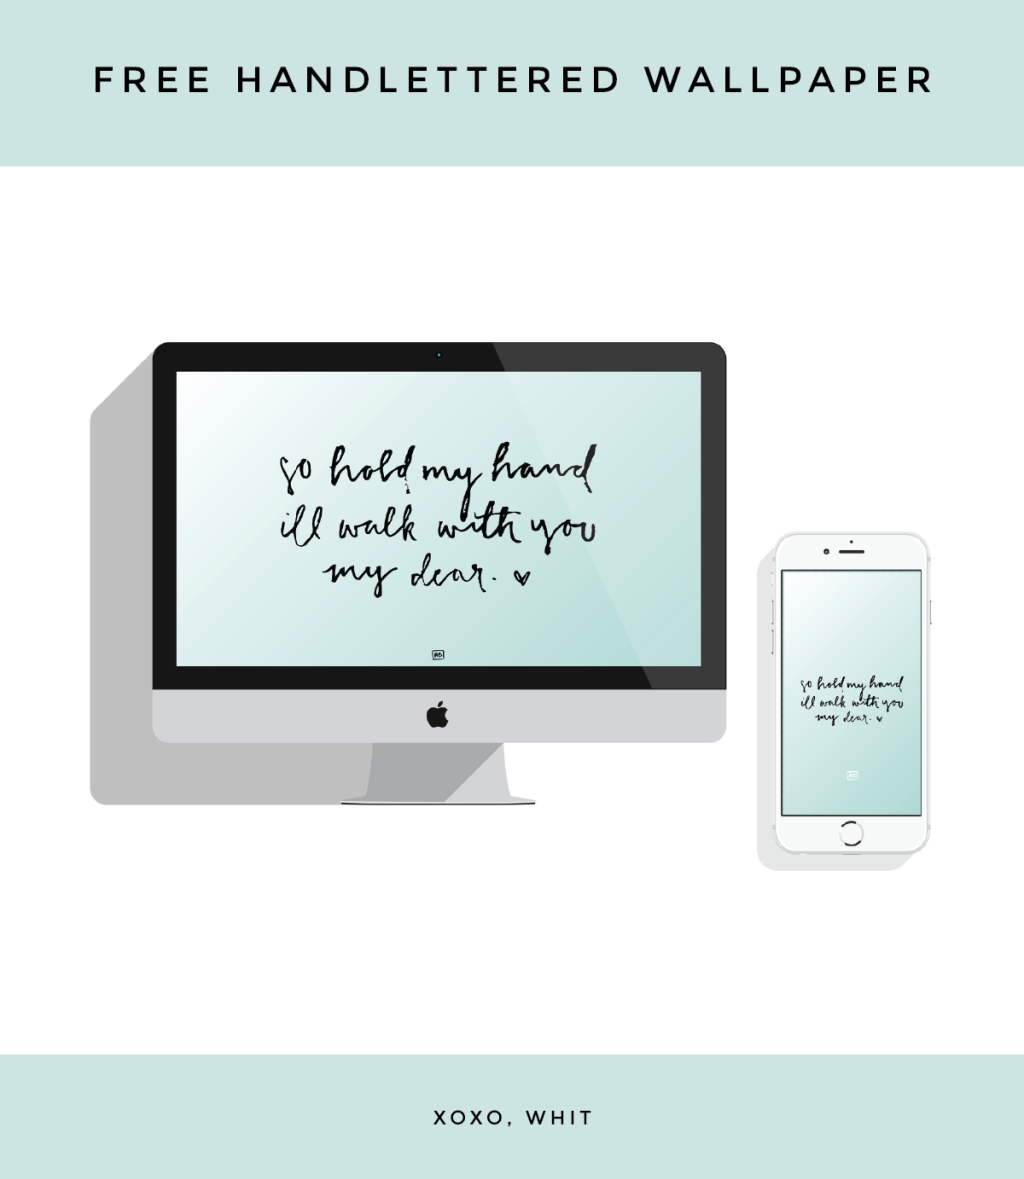 Free Handlettered Wallpaper